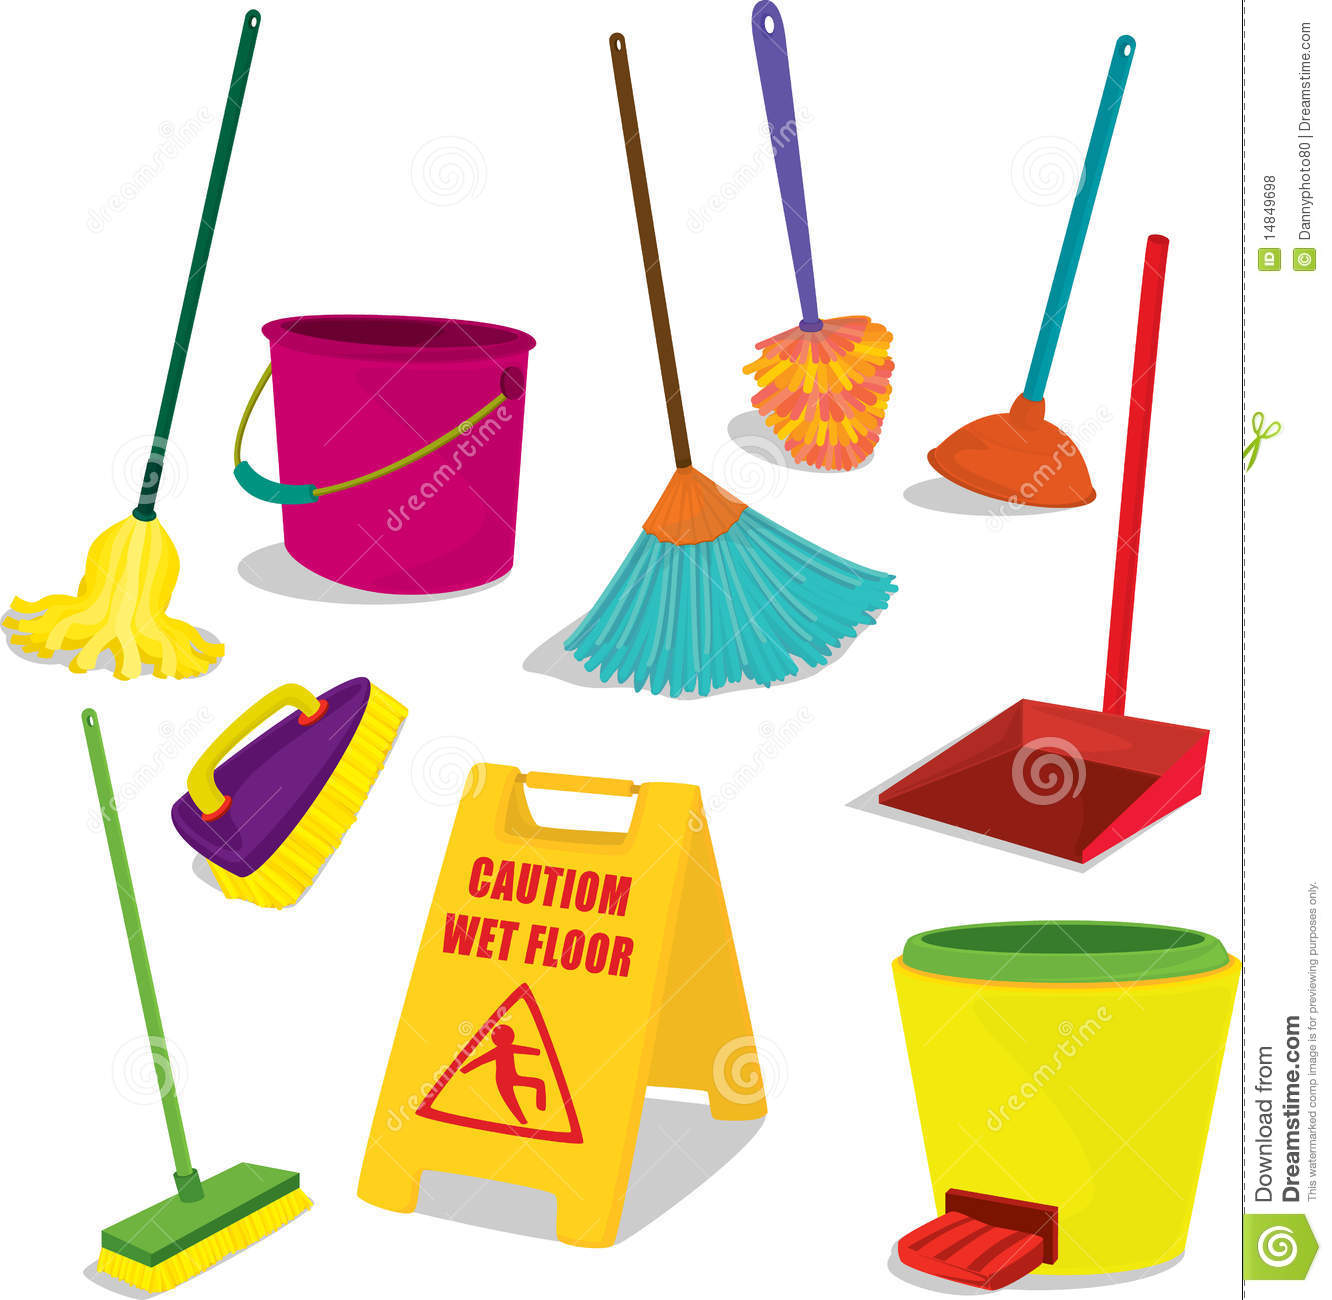 1332x1300 Rare Free Pics For Home And Office Cleaning Image Concept Ideas